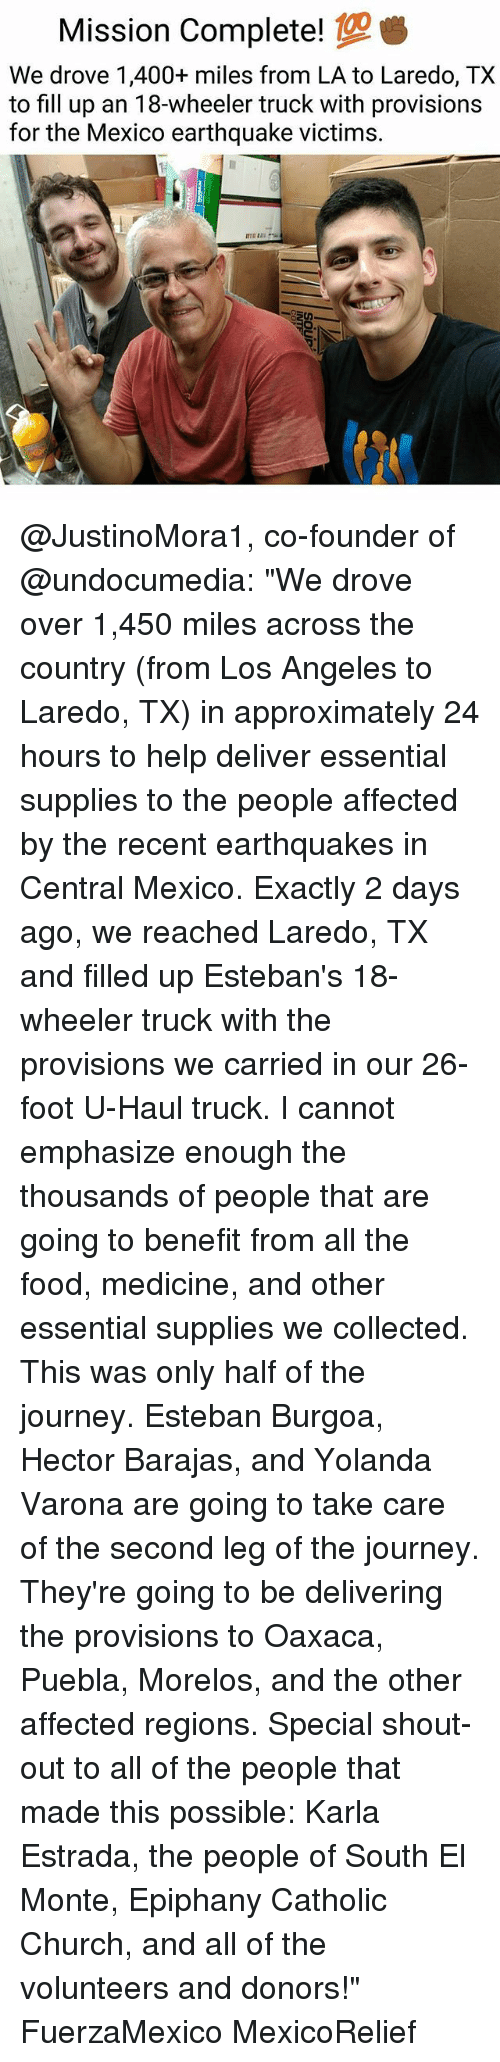 """earthquakes: Mission Complete!  We drove 1,400+ miles from LA to Laredo, TX  to fill up an 18-wheeler truck with provisions  for the Mexico earthquake victims. @JustinoMora1, co-founder of @undocumedia: """"We drove over 1,450 miles across the country (from Los Angeles to Laredo, TX) in approximately 24 hours to help deliver essential supplies to the people affected by the recent earthquakes in Central Mexico. Exactly 2 days ago, we reached Laredo, TX and filled up Esteban's 18-wheeler truck with the provisions we carried in our 26-foot U-Haul truck. I cannot emphasize enough the thousands of people that are going to benefit from all the food, medicine, and other essential supplies we collected. This was only half of the journey. Esteban Burgoa, Hector Barajas, and Yolanda Varona are going to take care of the second leg of the journey. They're going to be delivering the provisions to Oaxaca, Puebla, Morelos, and the other affected regions. Special shout-out to all of the people that made this possible: Karla Estrada, the people of South El Monte, Epiphany Catholic Church, and all of the volunteers and donors!"""" FuerzaMexico MexicoRelief"""